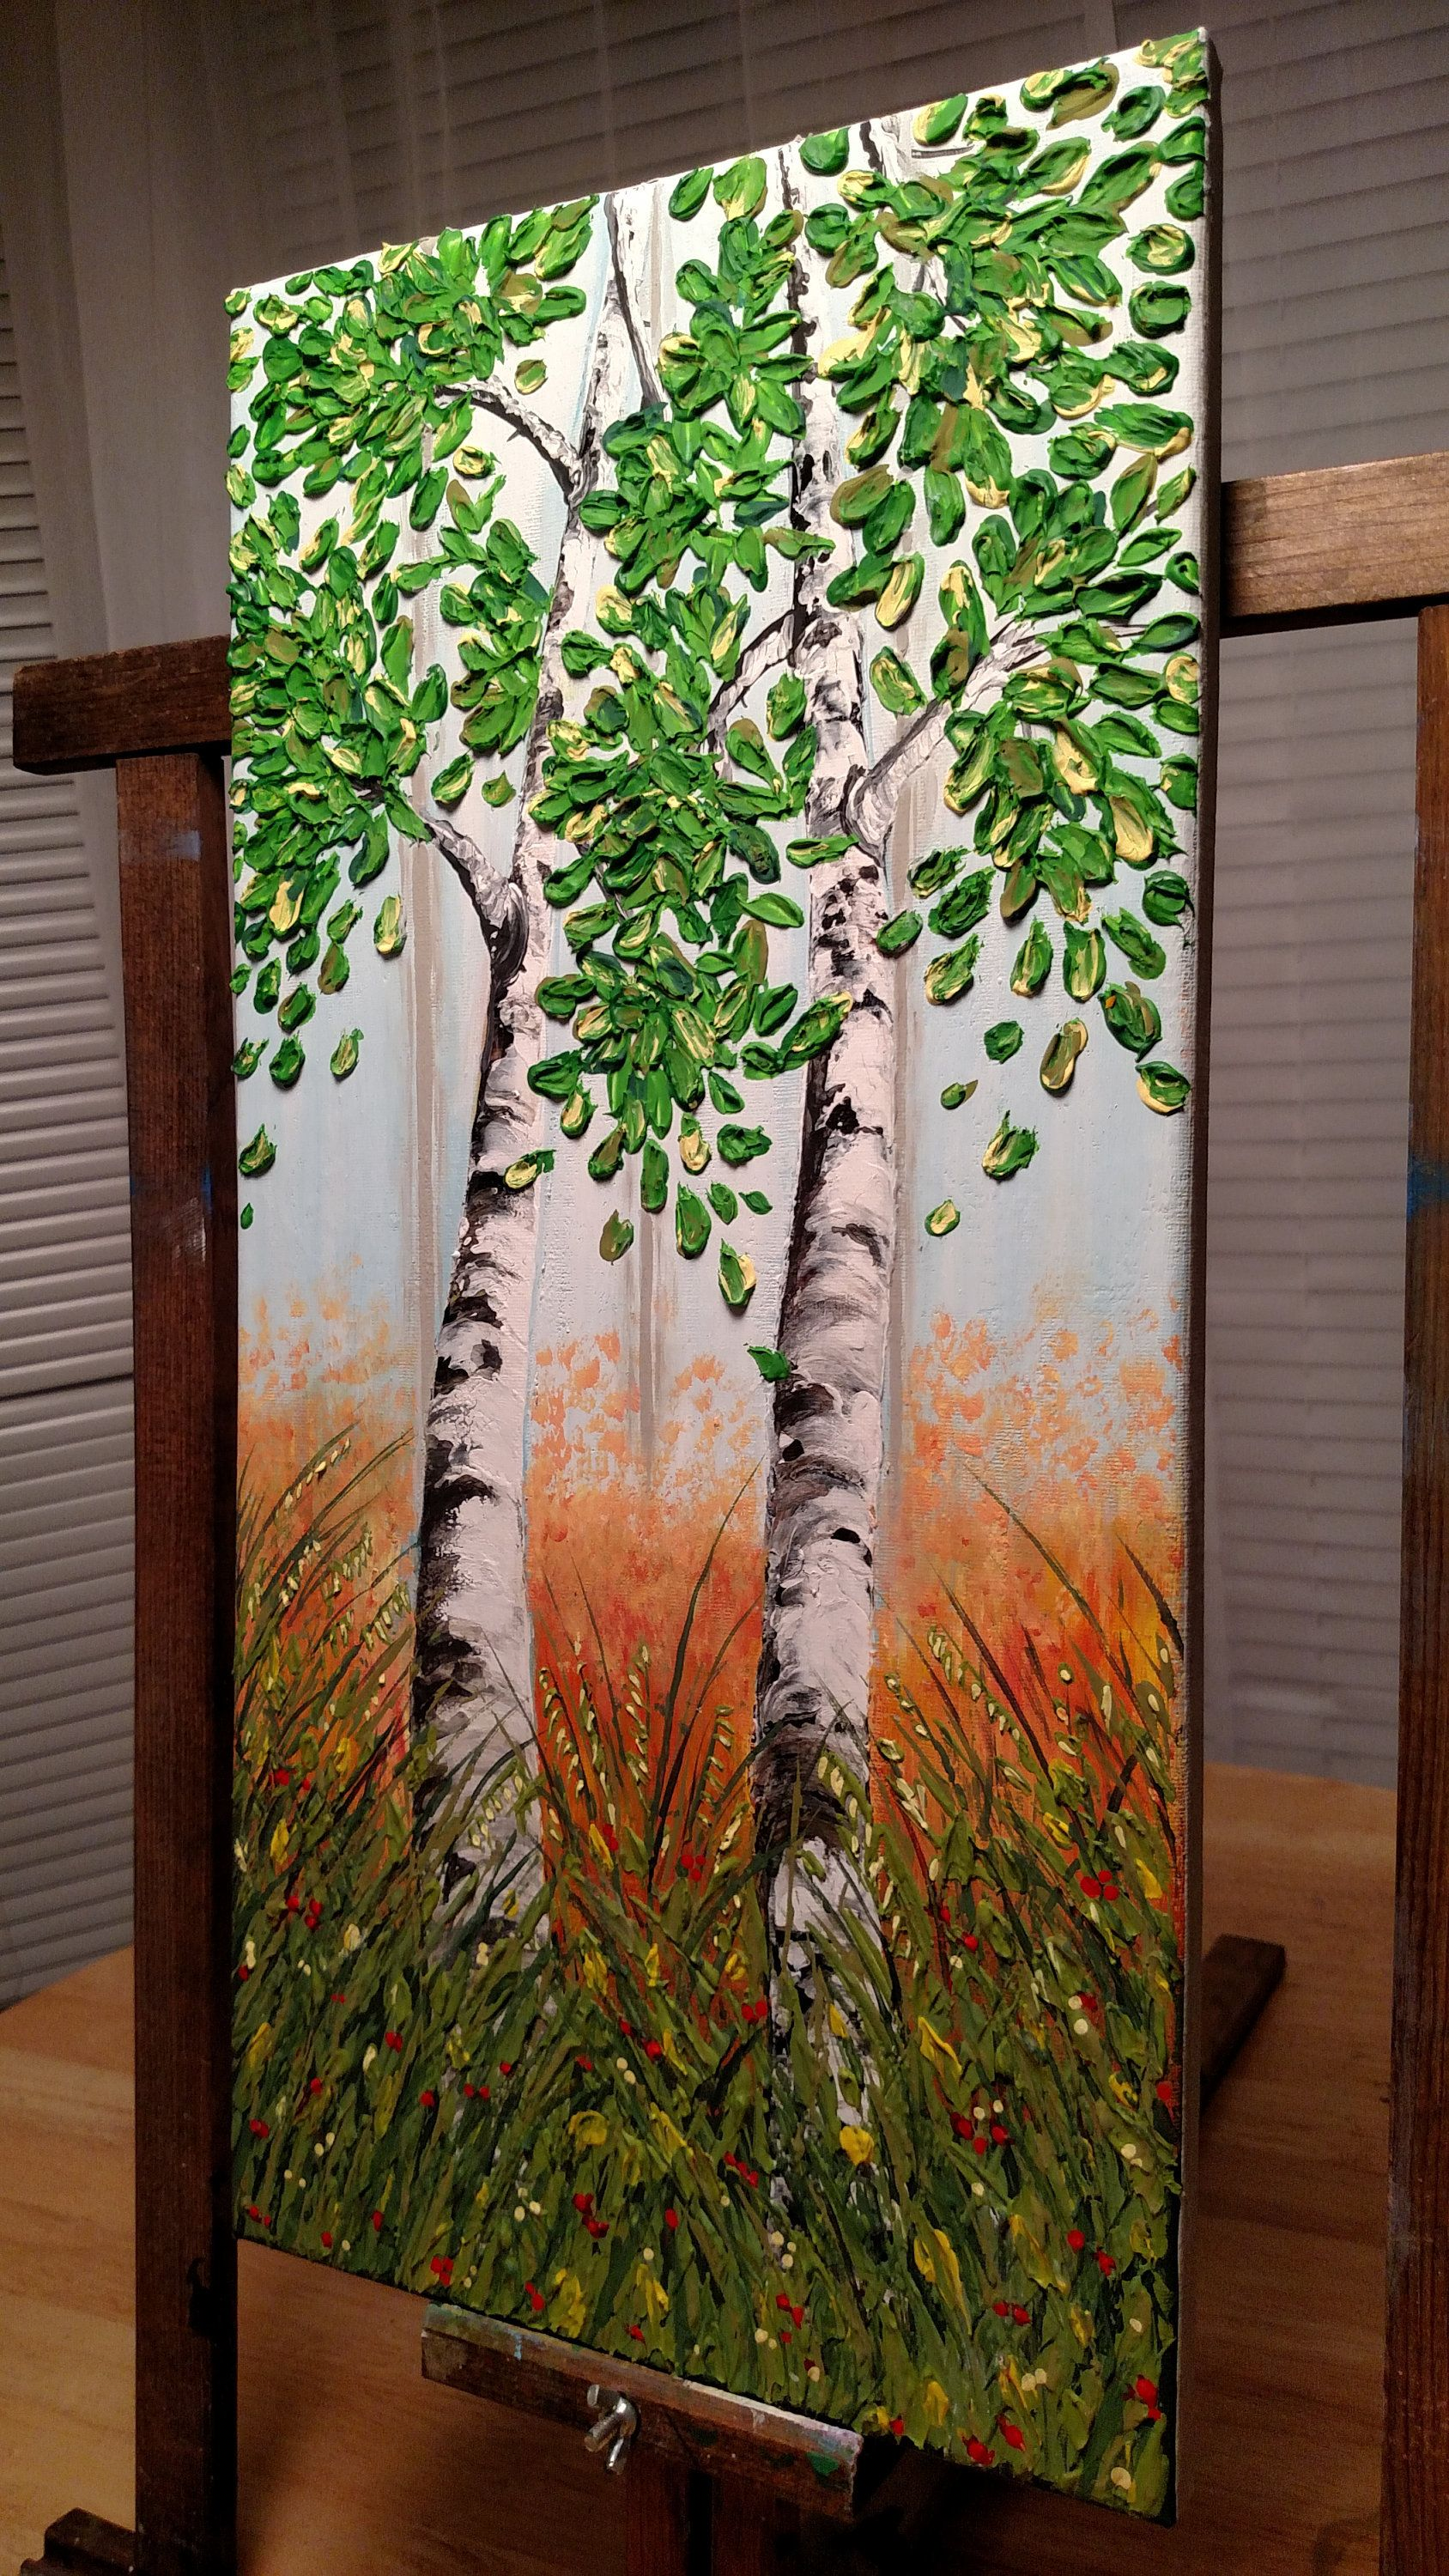 Acrylic Original Textured Birch Trees Canvas Painting Wall Art By HarmonyArt23 On Etsy